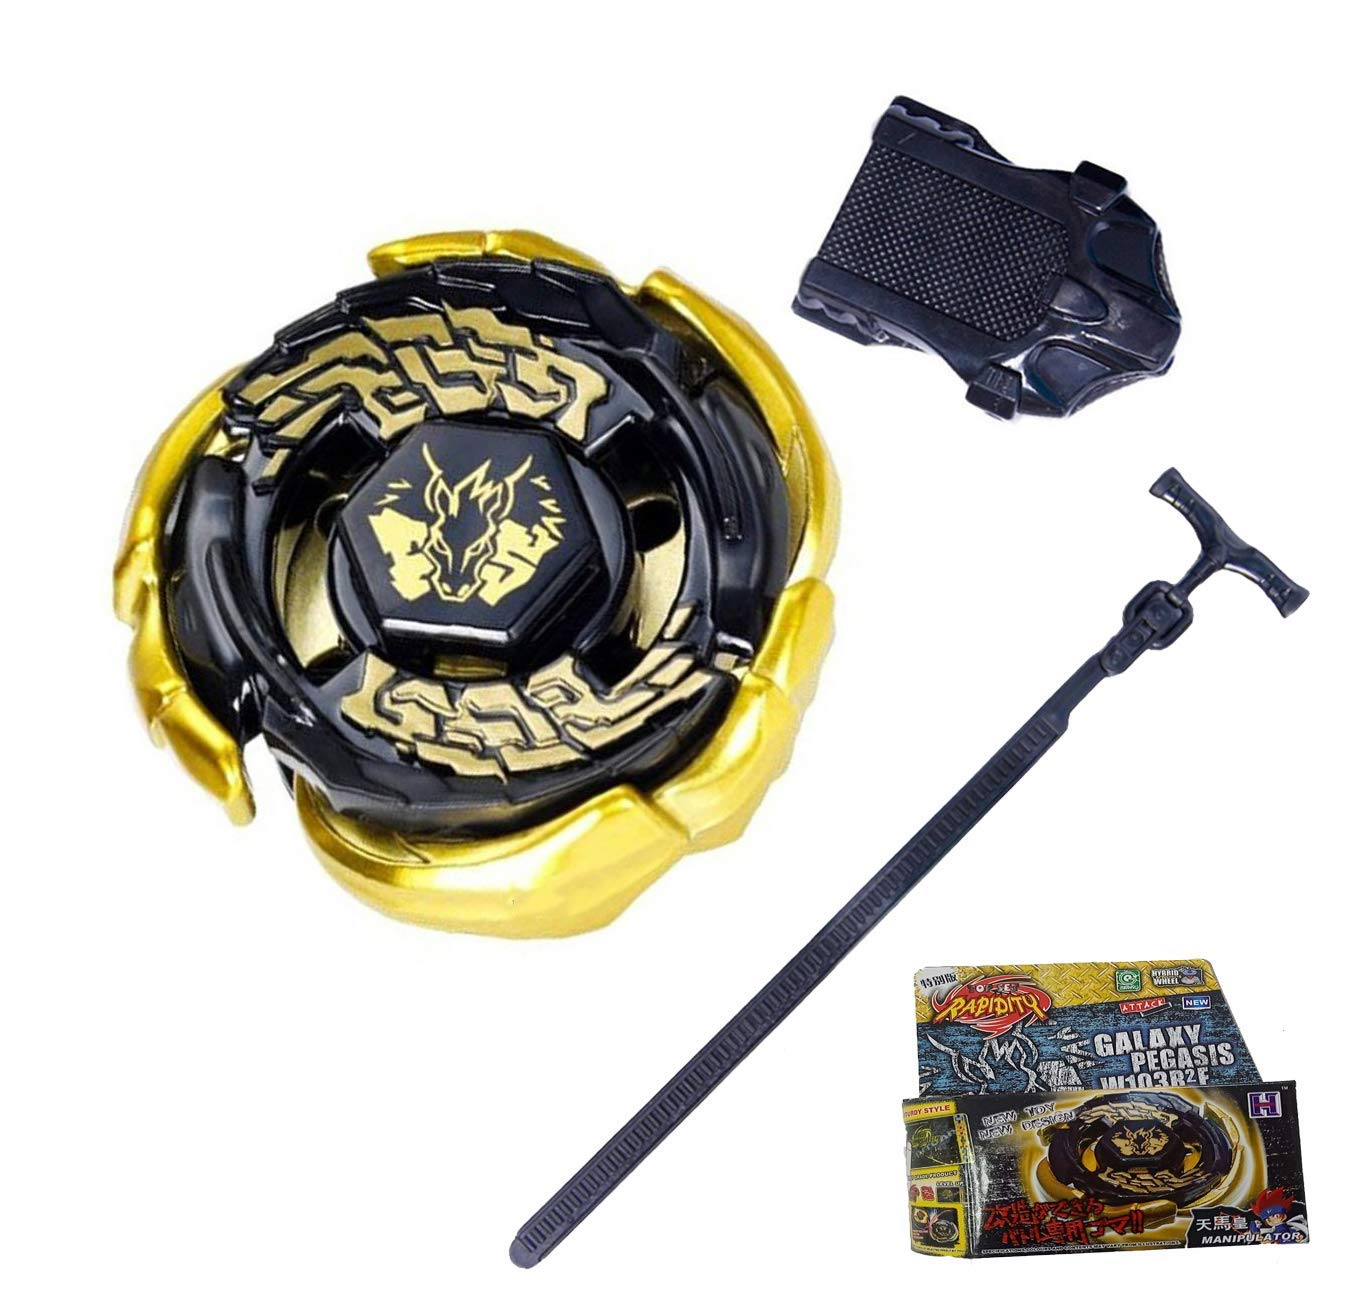 Gold Galaxy Pegasus/Pegasis Black Hole Sun Masters 4D BB-43 High Performance Game with Launcher by snorain